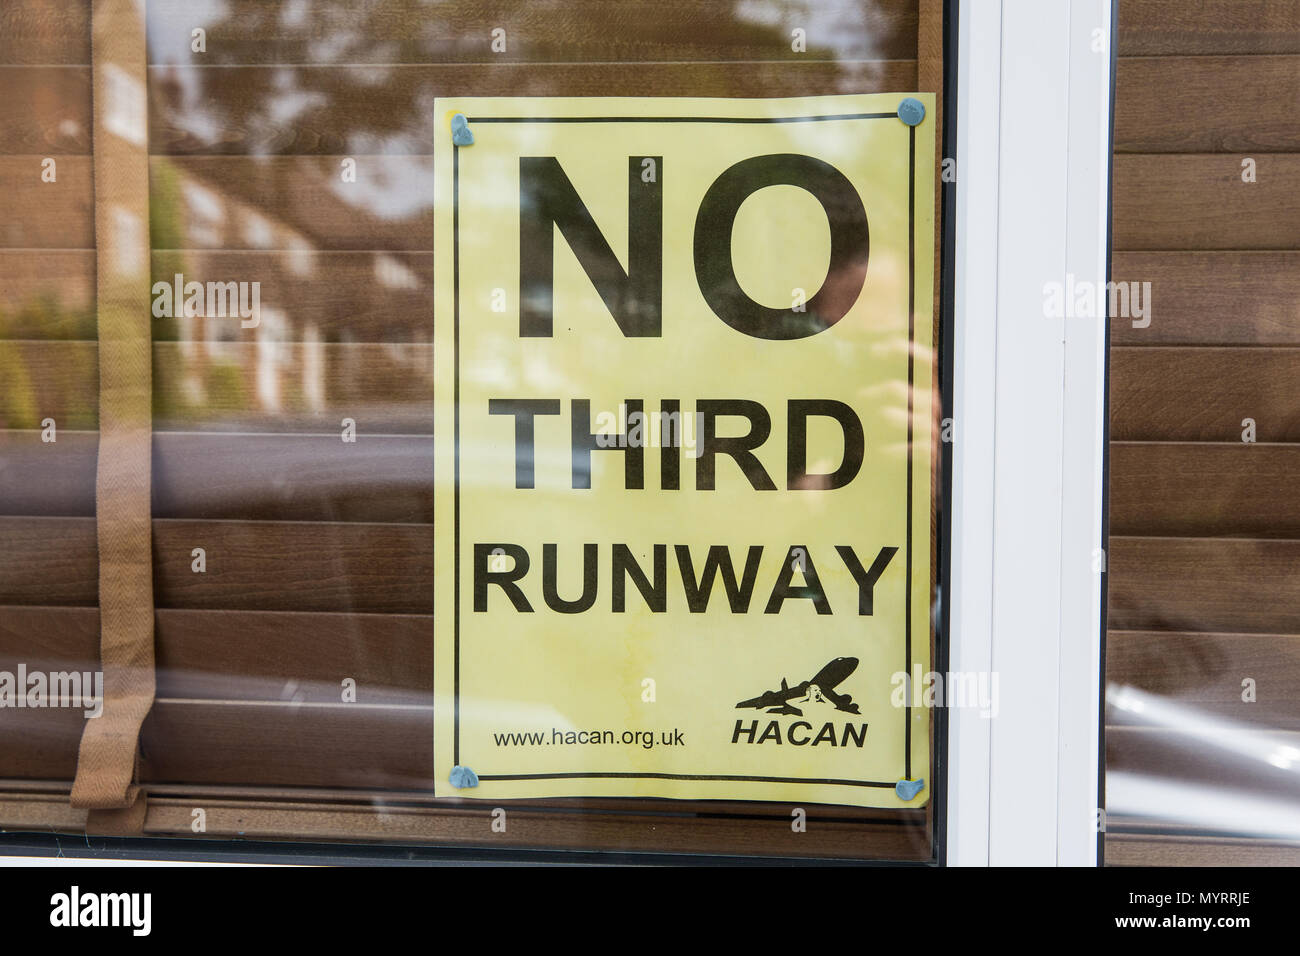 Harmondsworth, UK. 5th June, 2018. A 'No Third Runway' poster in the window of a house in Harmondsworth village. - Stock Image